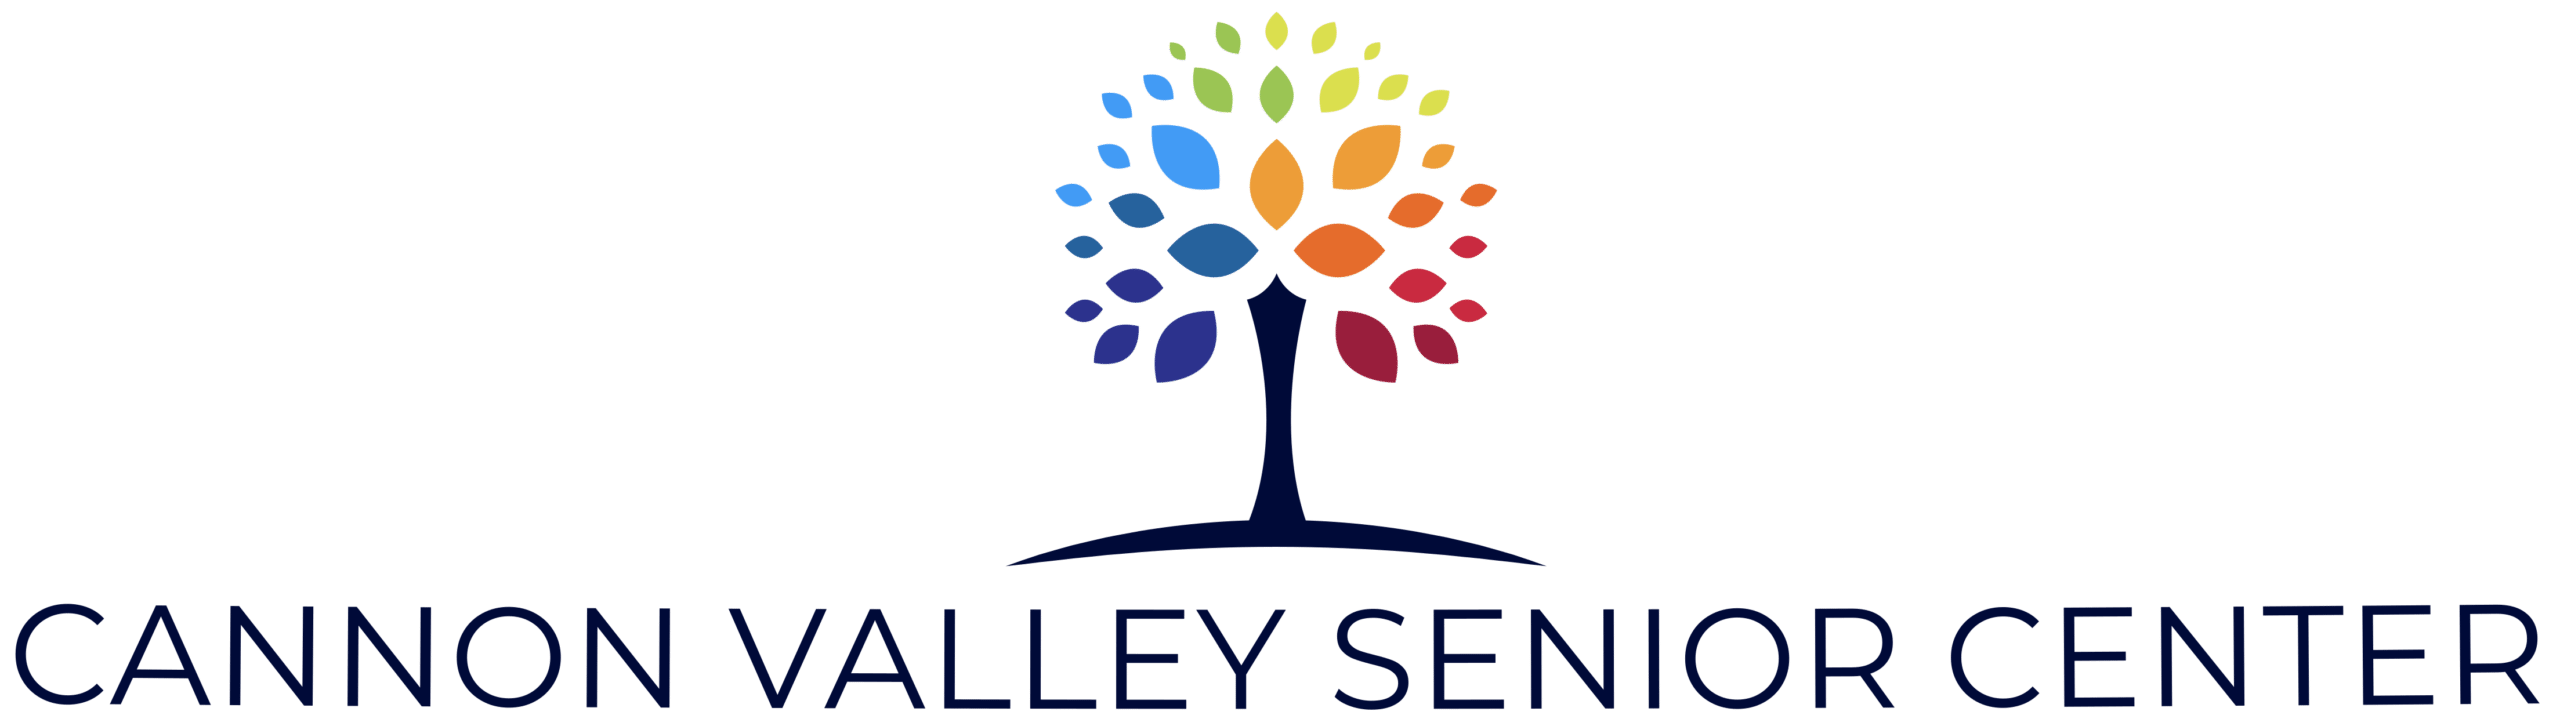 Cannon Valley Senior Center